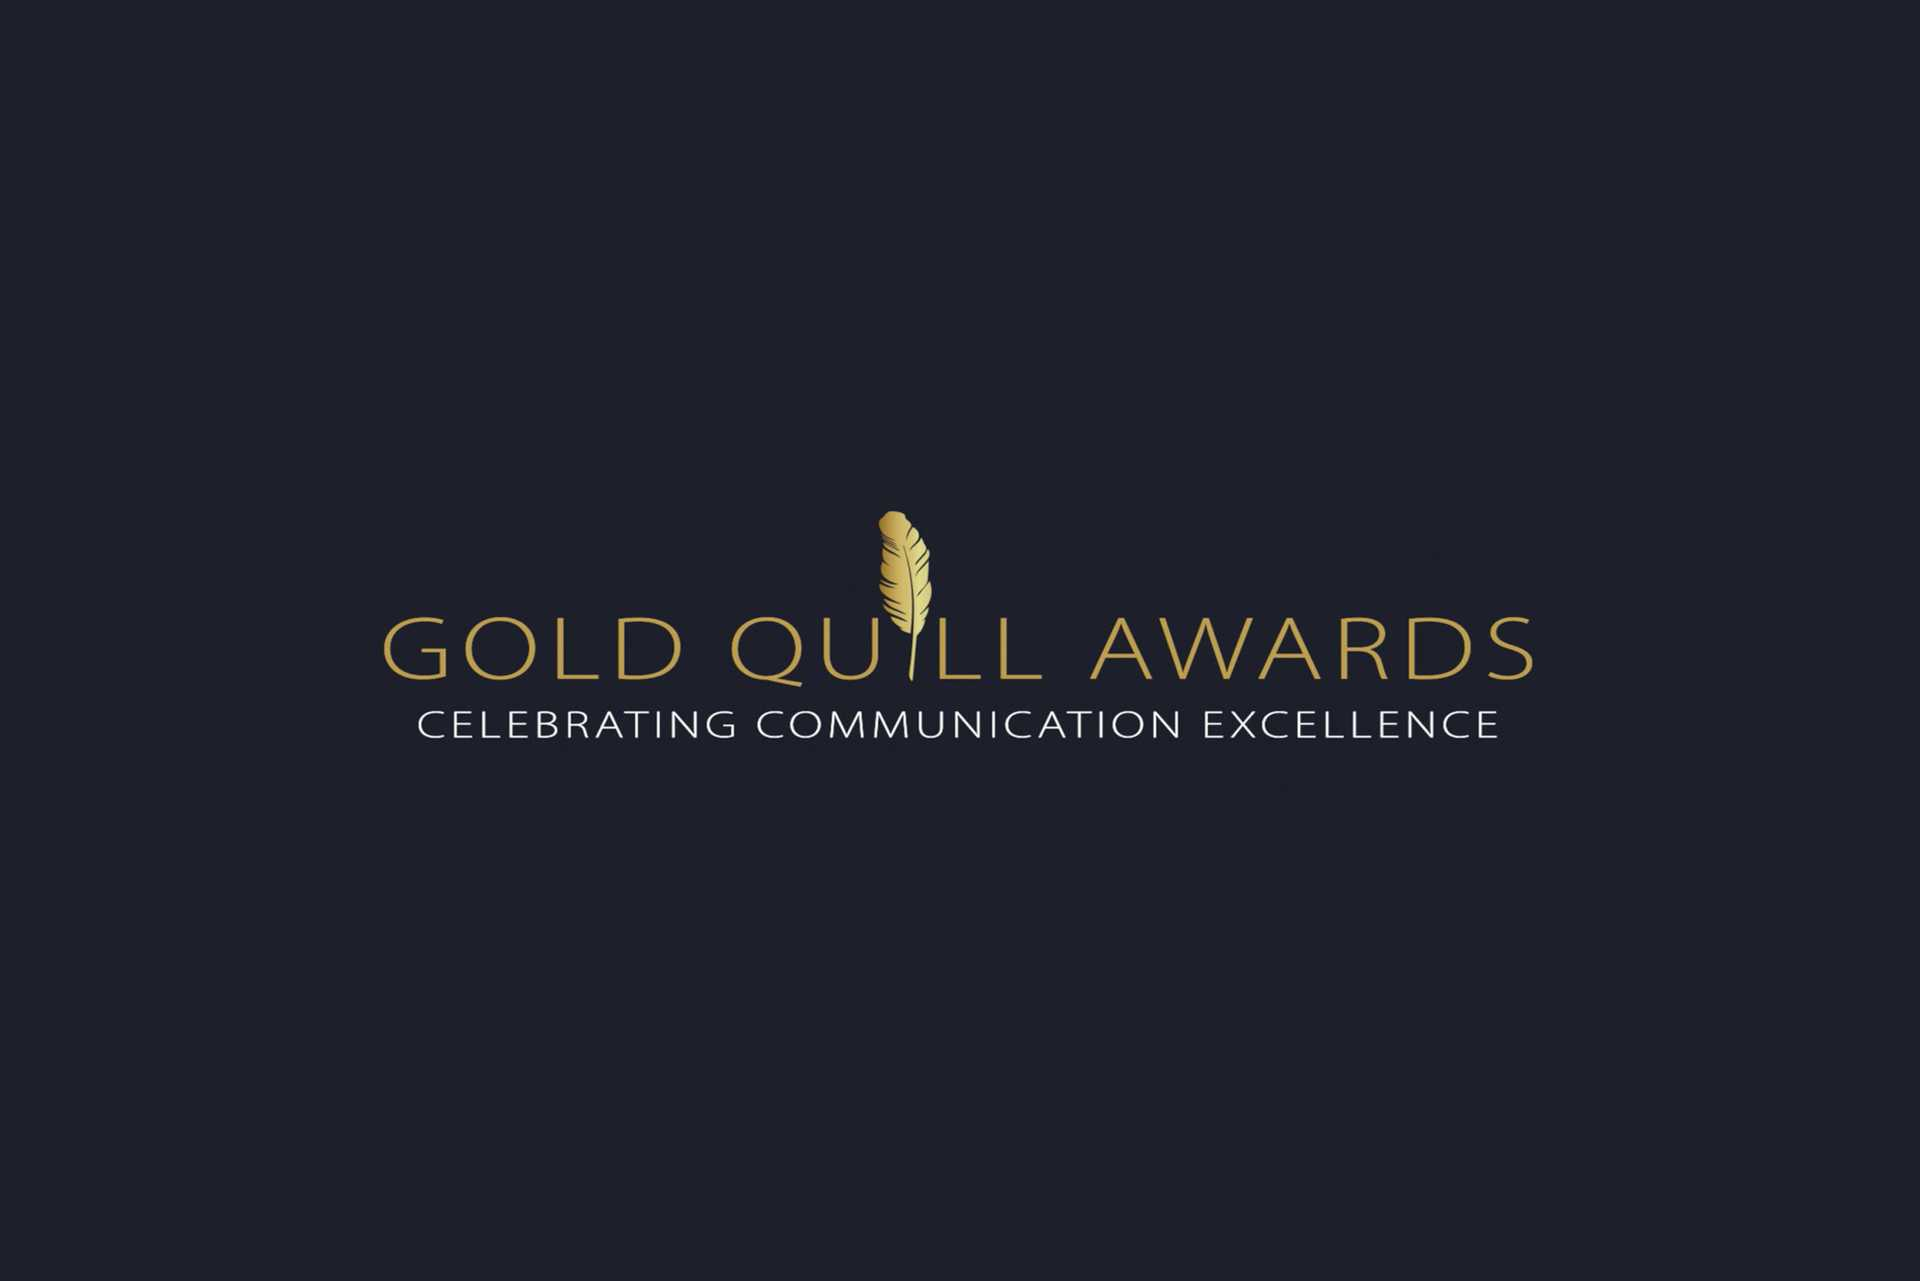 Gold Quill Awards celebrating communication excellence on dark gray